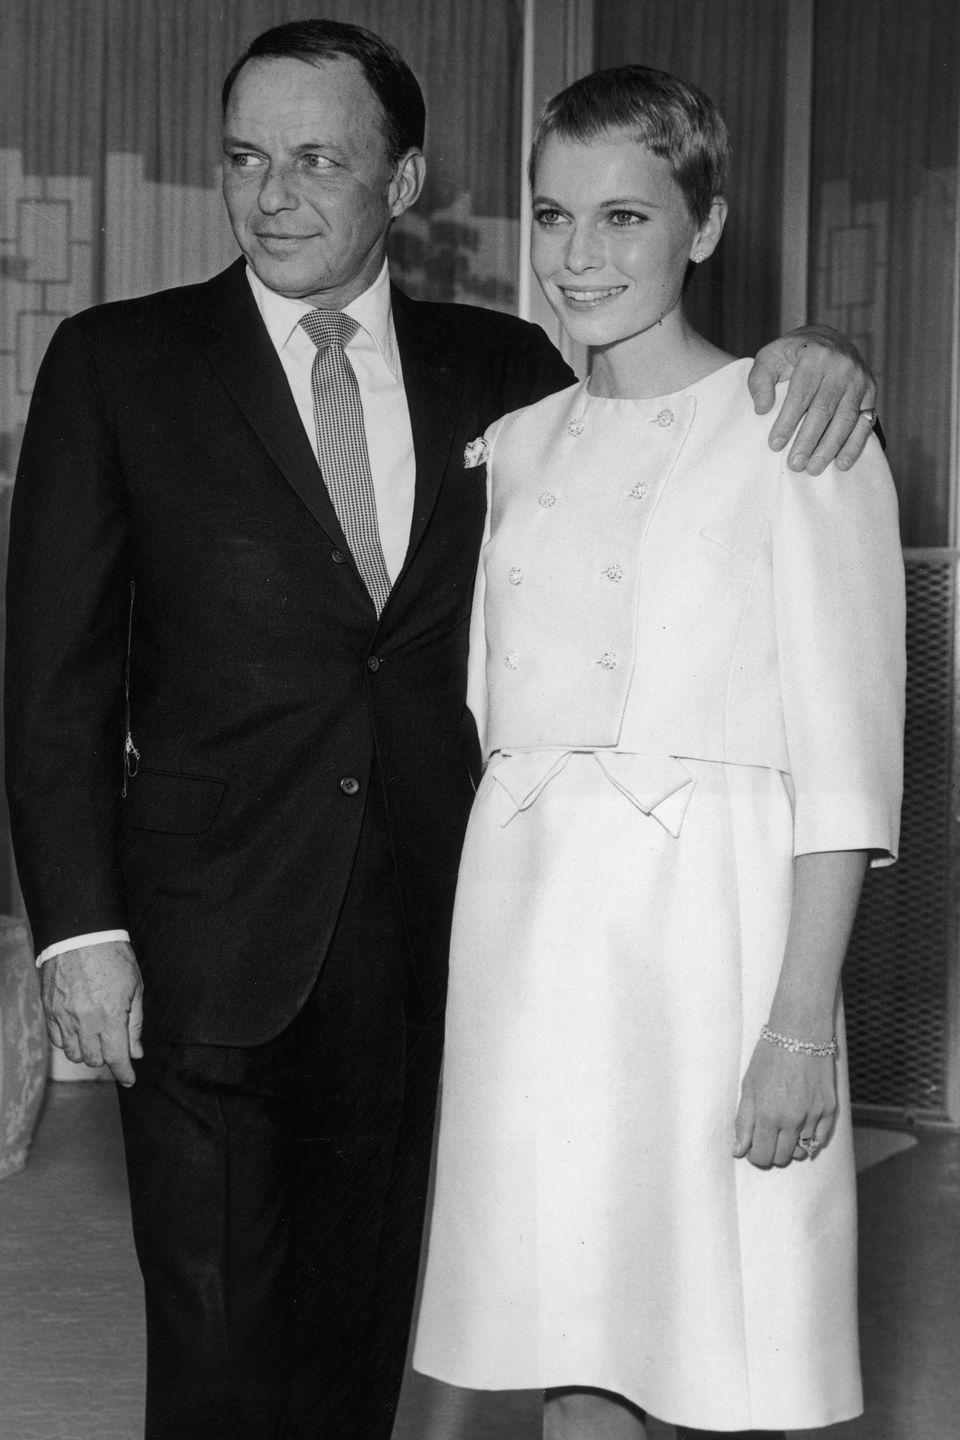 <p>Frank Sinatra shocked fans when he wed up-and-coming actress Mia Farrow in 1966. The singer, who had been married twice before, married the 21-year-old actress at the Las Vegas home of his friend, Jack Entratter. </p><p>Although the pair divorced in 1967, they remained friends until his death. </p>